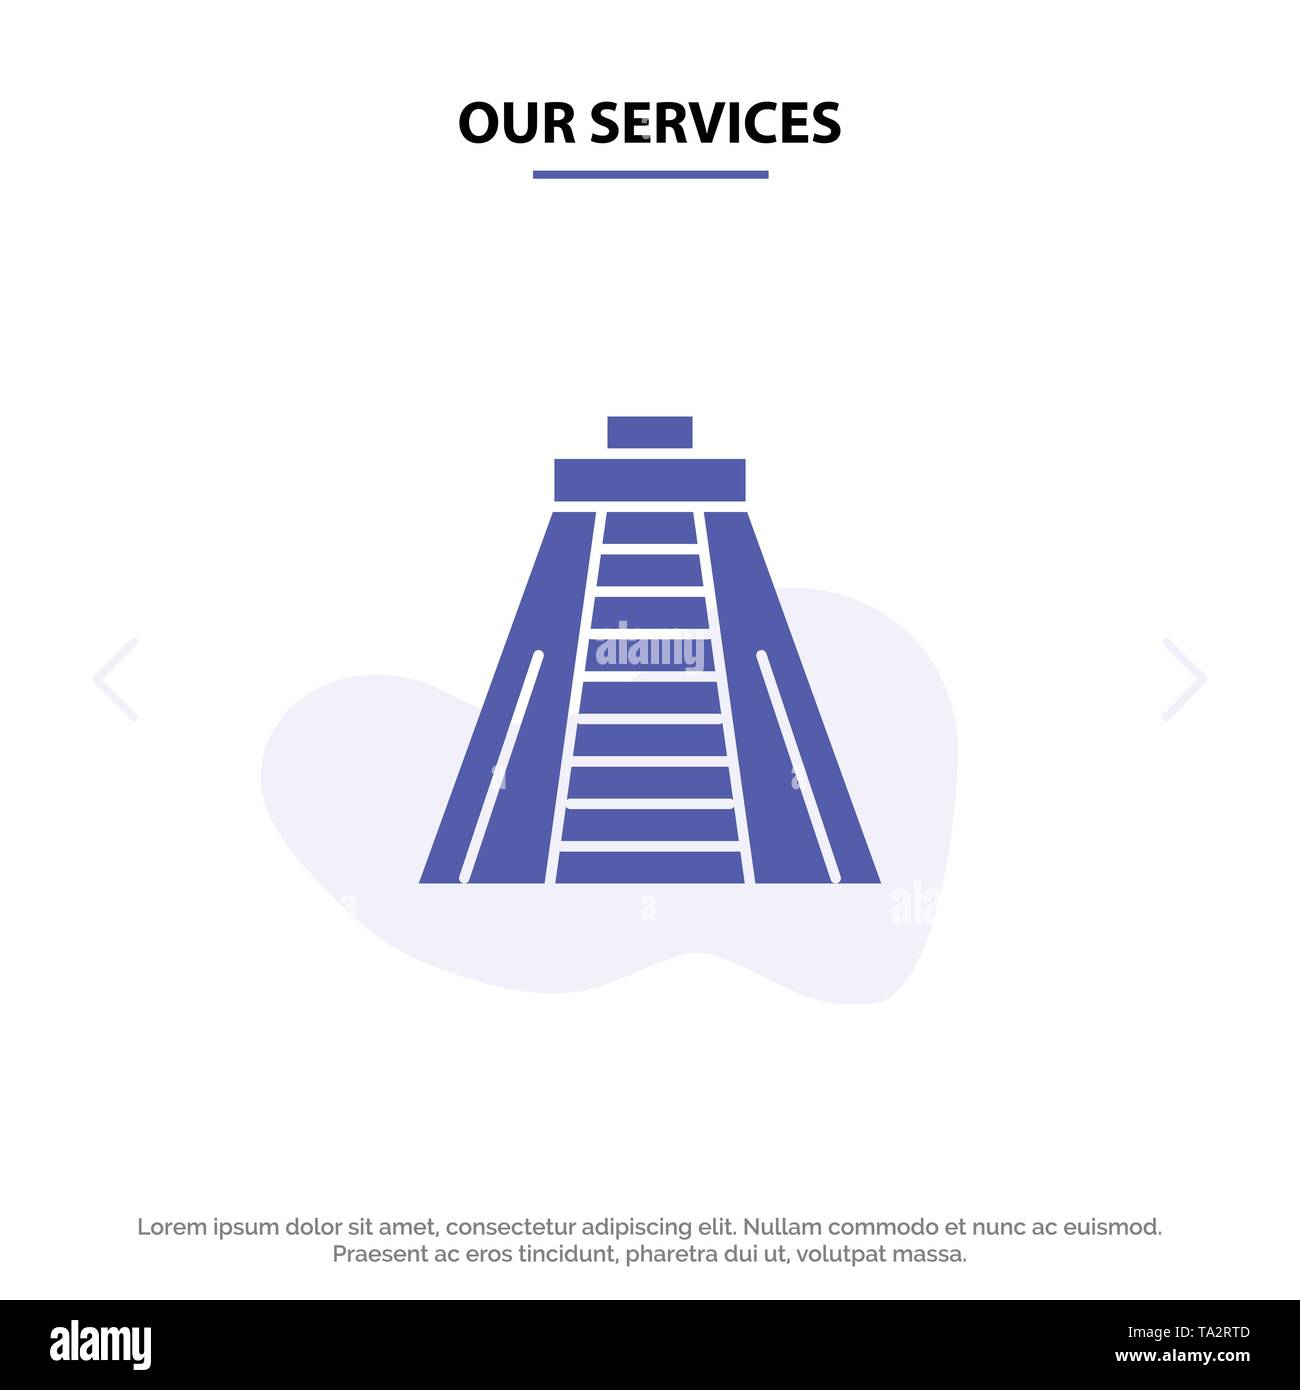 Our Services  Chichen Itza, Landmark, Monument Solid Glyph Icon Web card Template - Stock Image